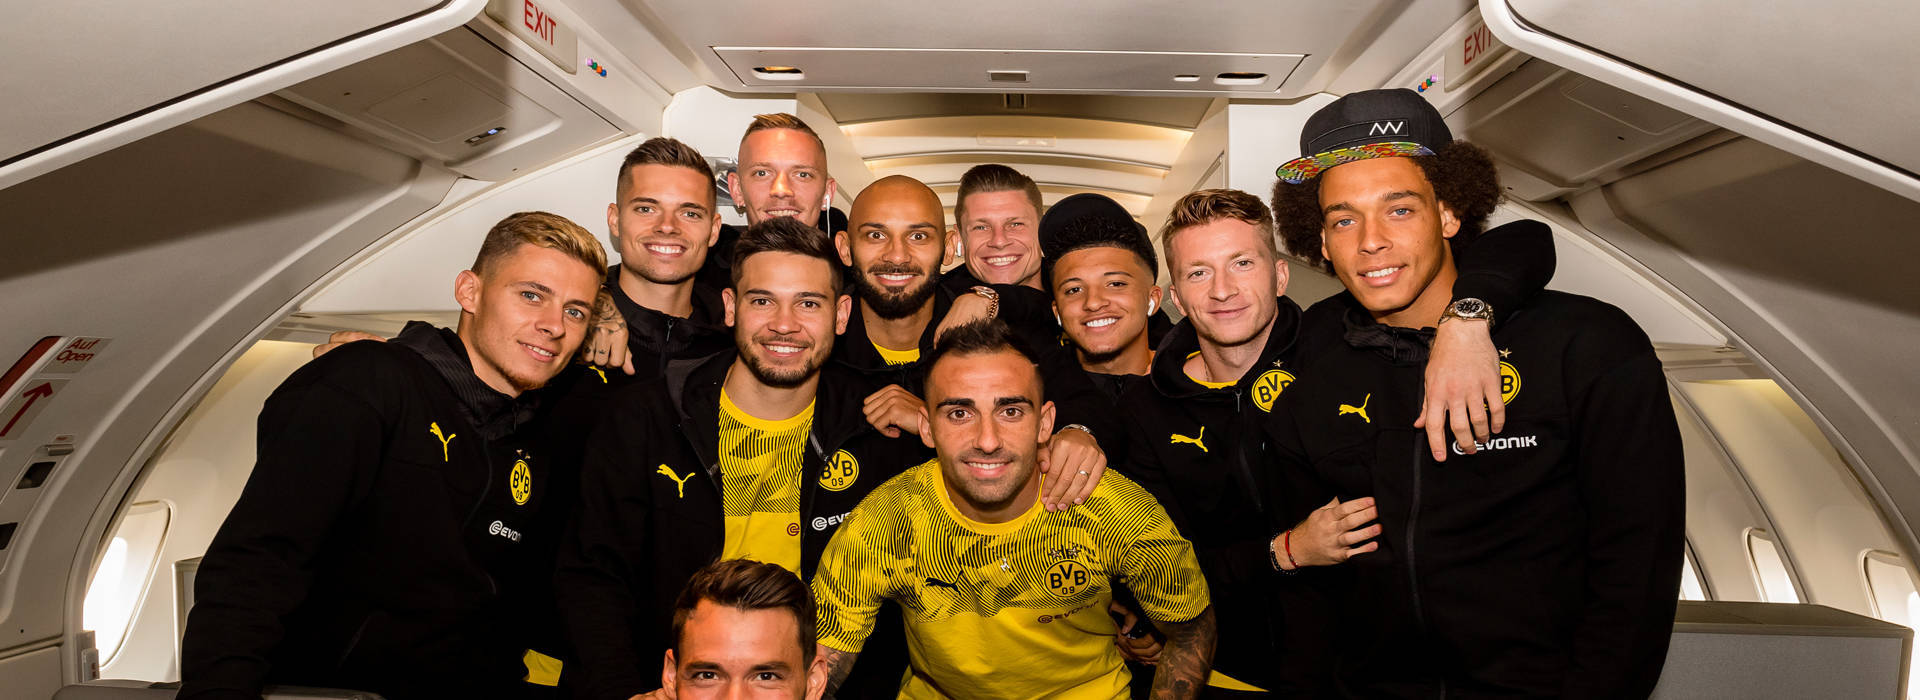 BVB depart for the United States